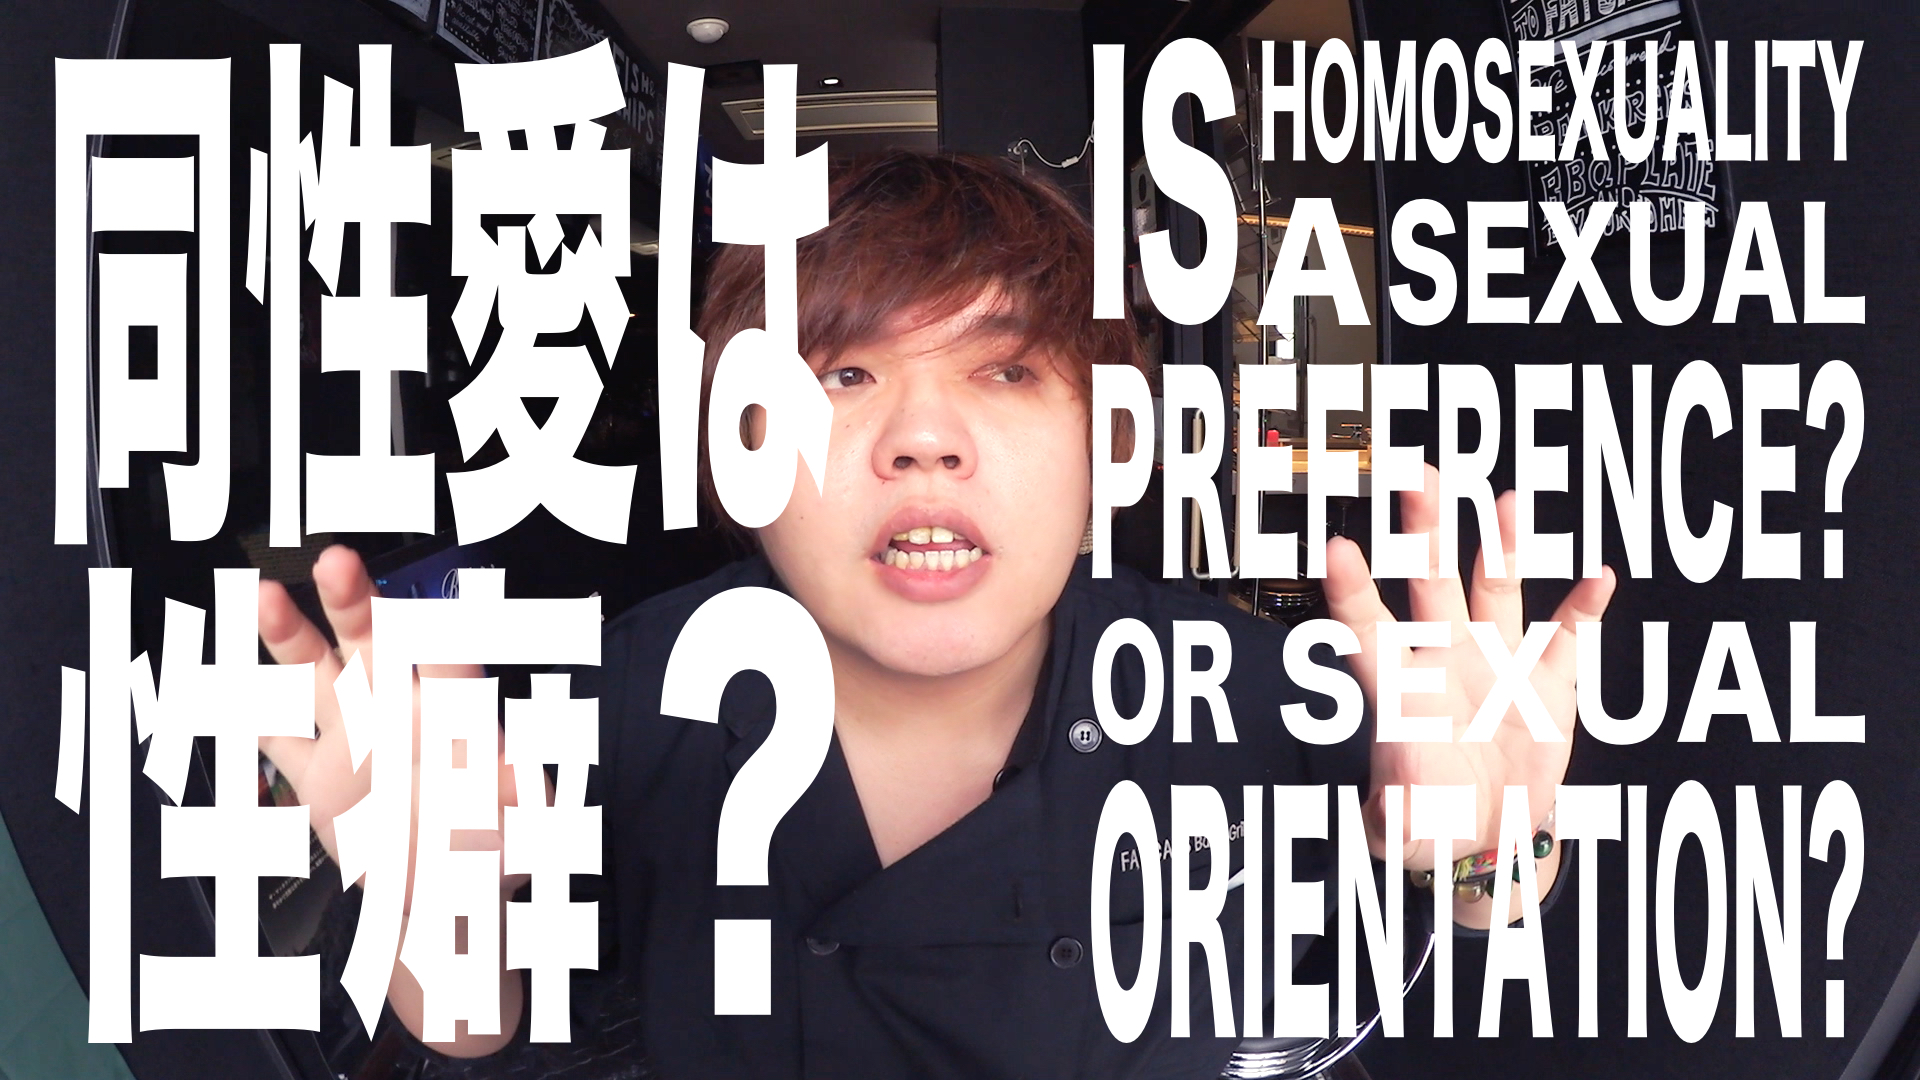 Was Homosexuality Discovered or Invented?